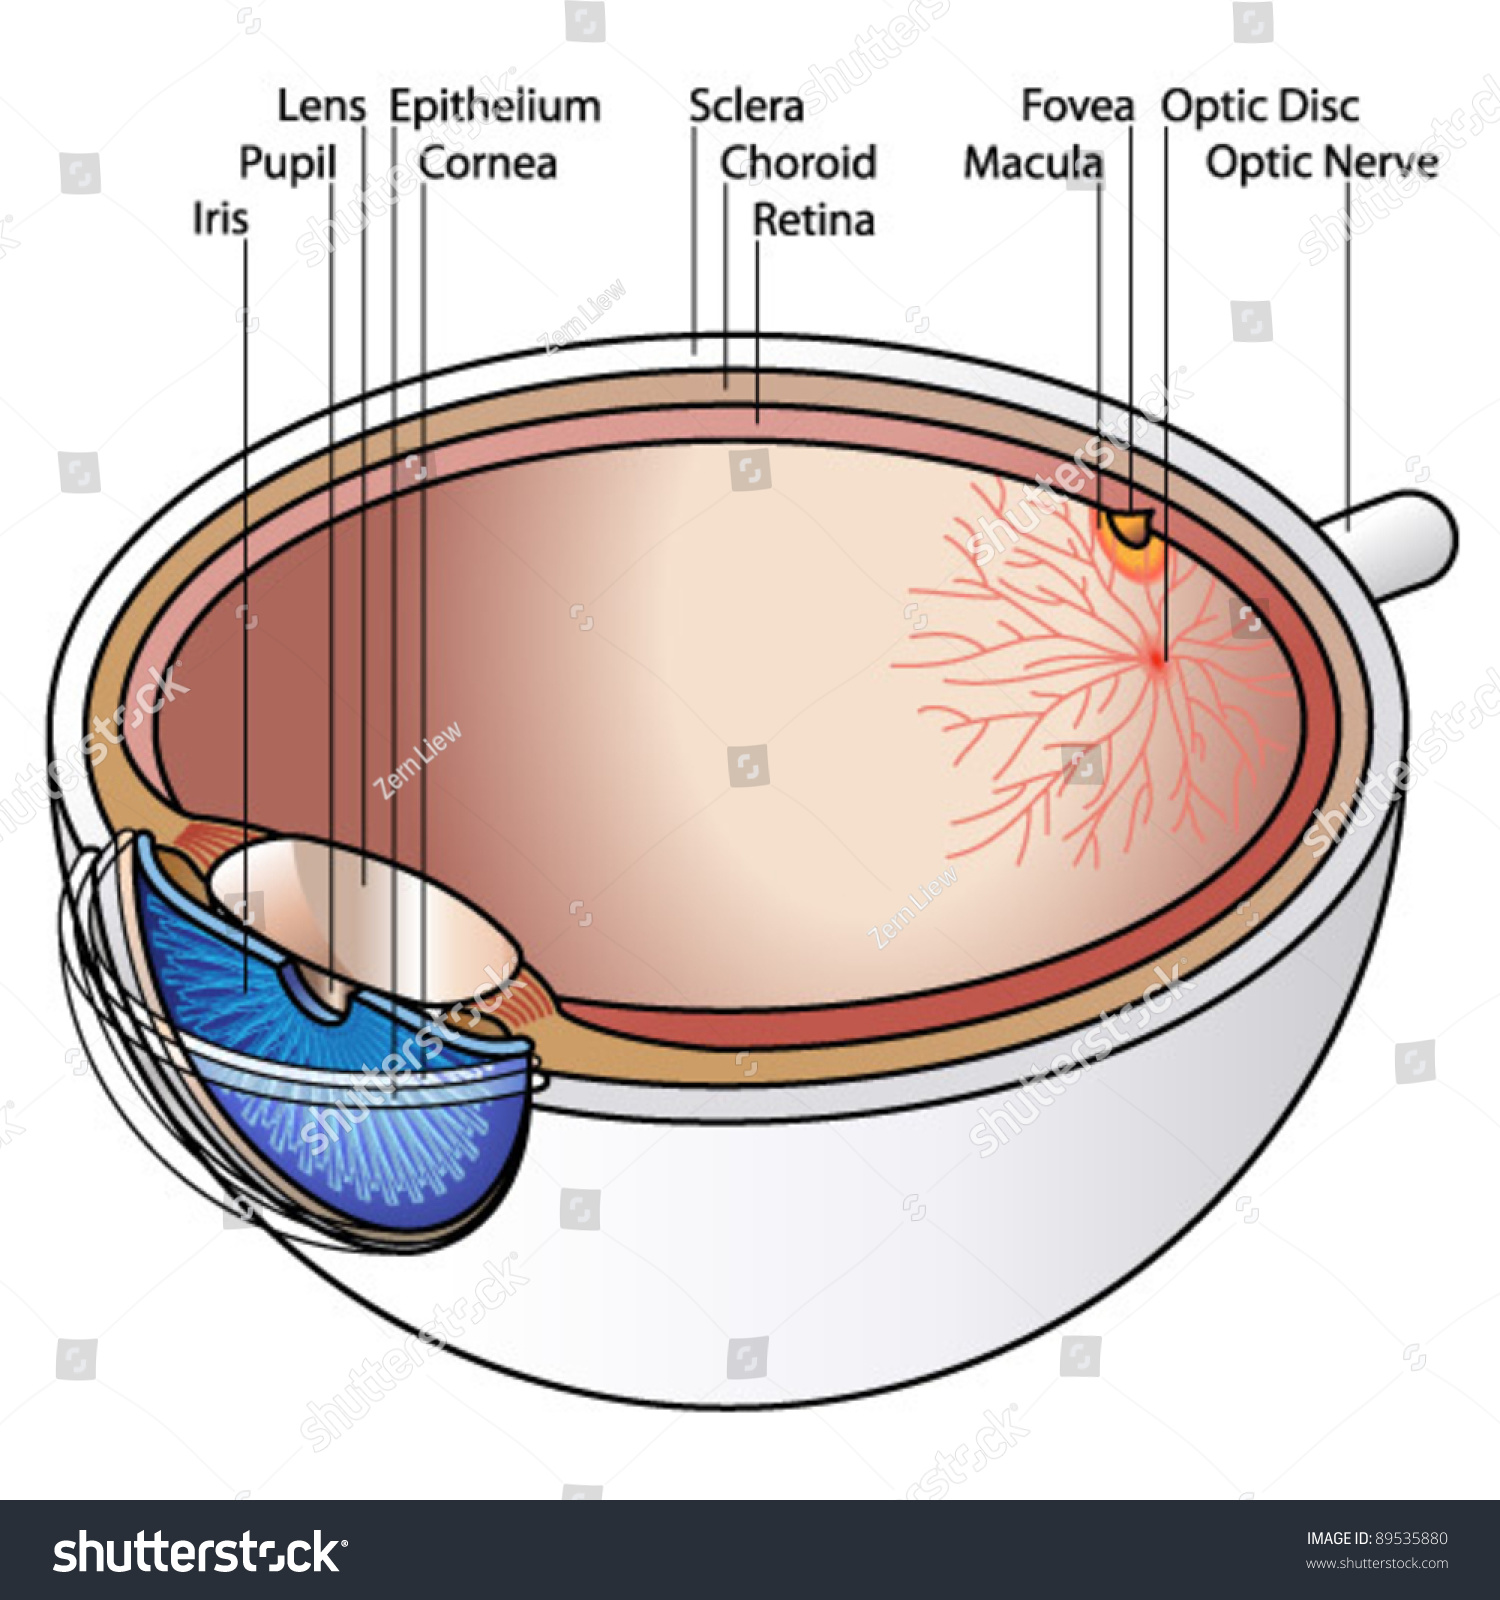 hight resolution of human eye cross section with labels labels may be deleted